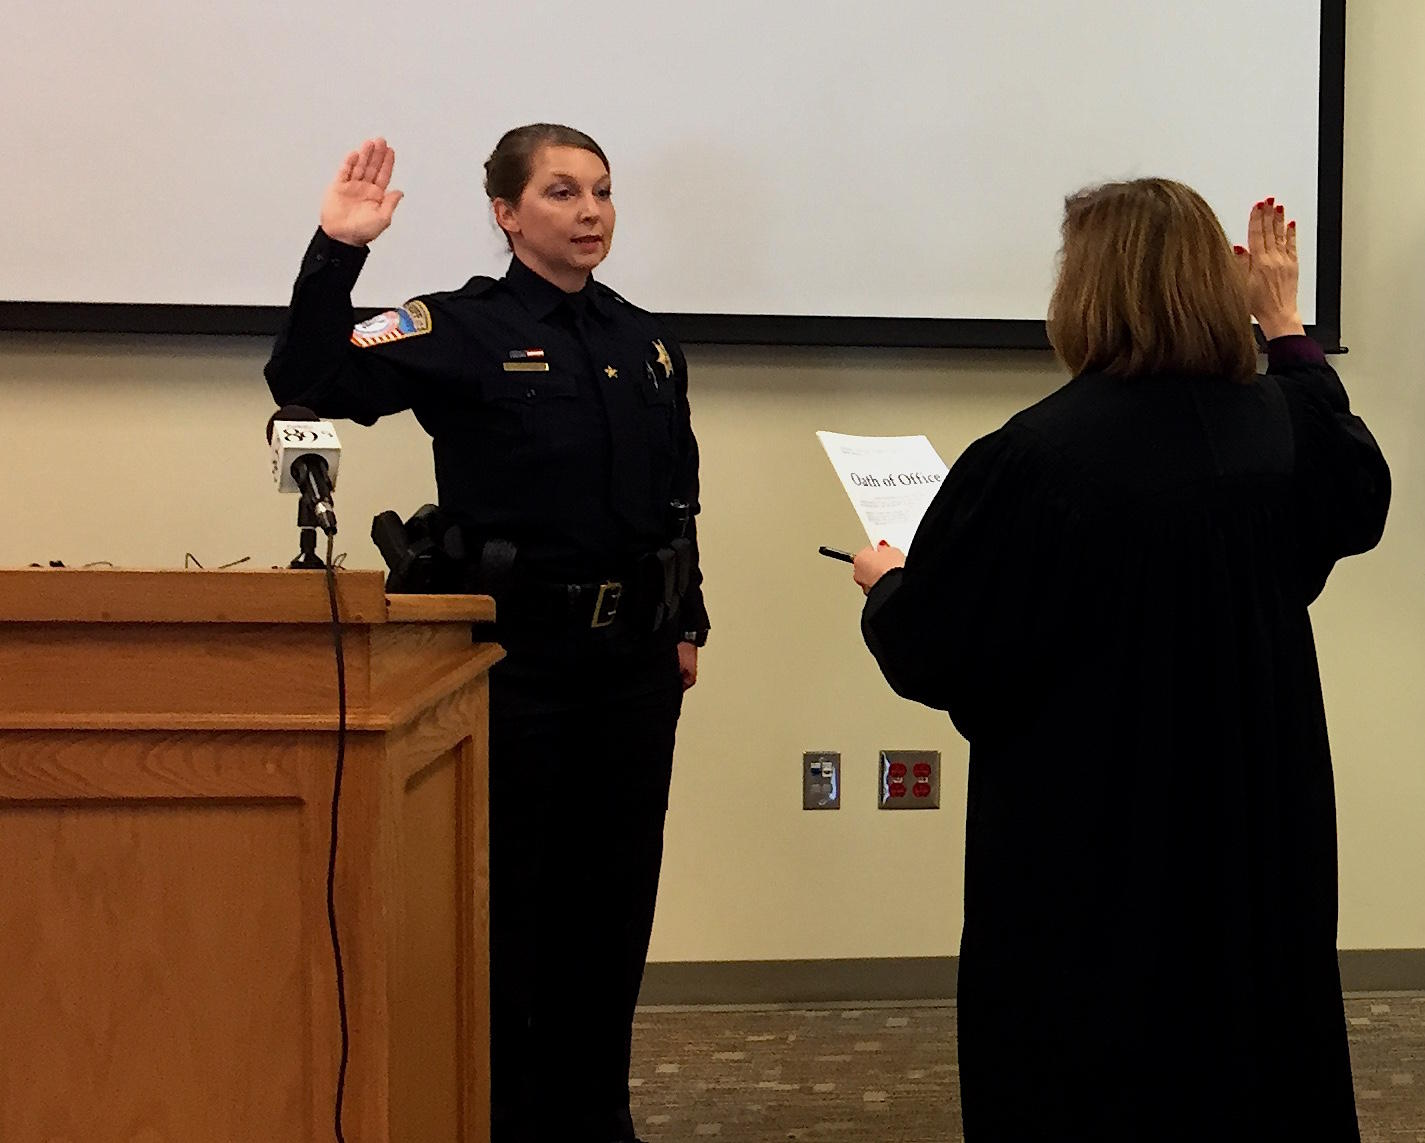 Former Tulsa Officer Shelby Sworn in as Sheriff's Reserve Deputy